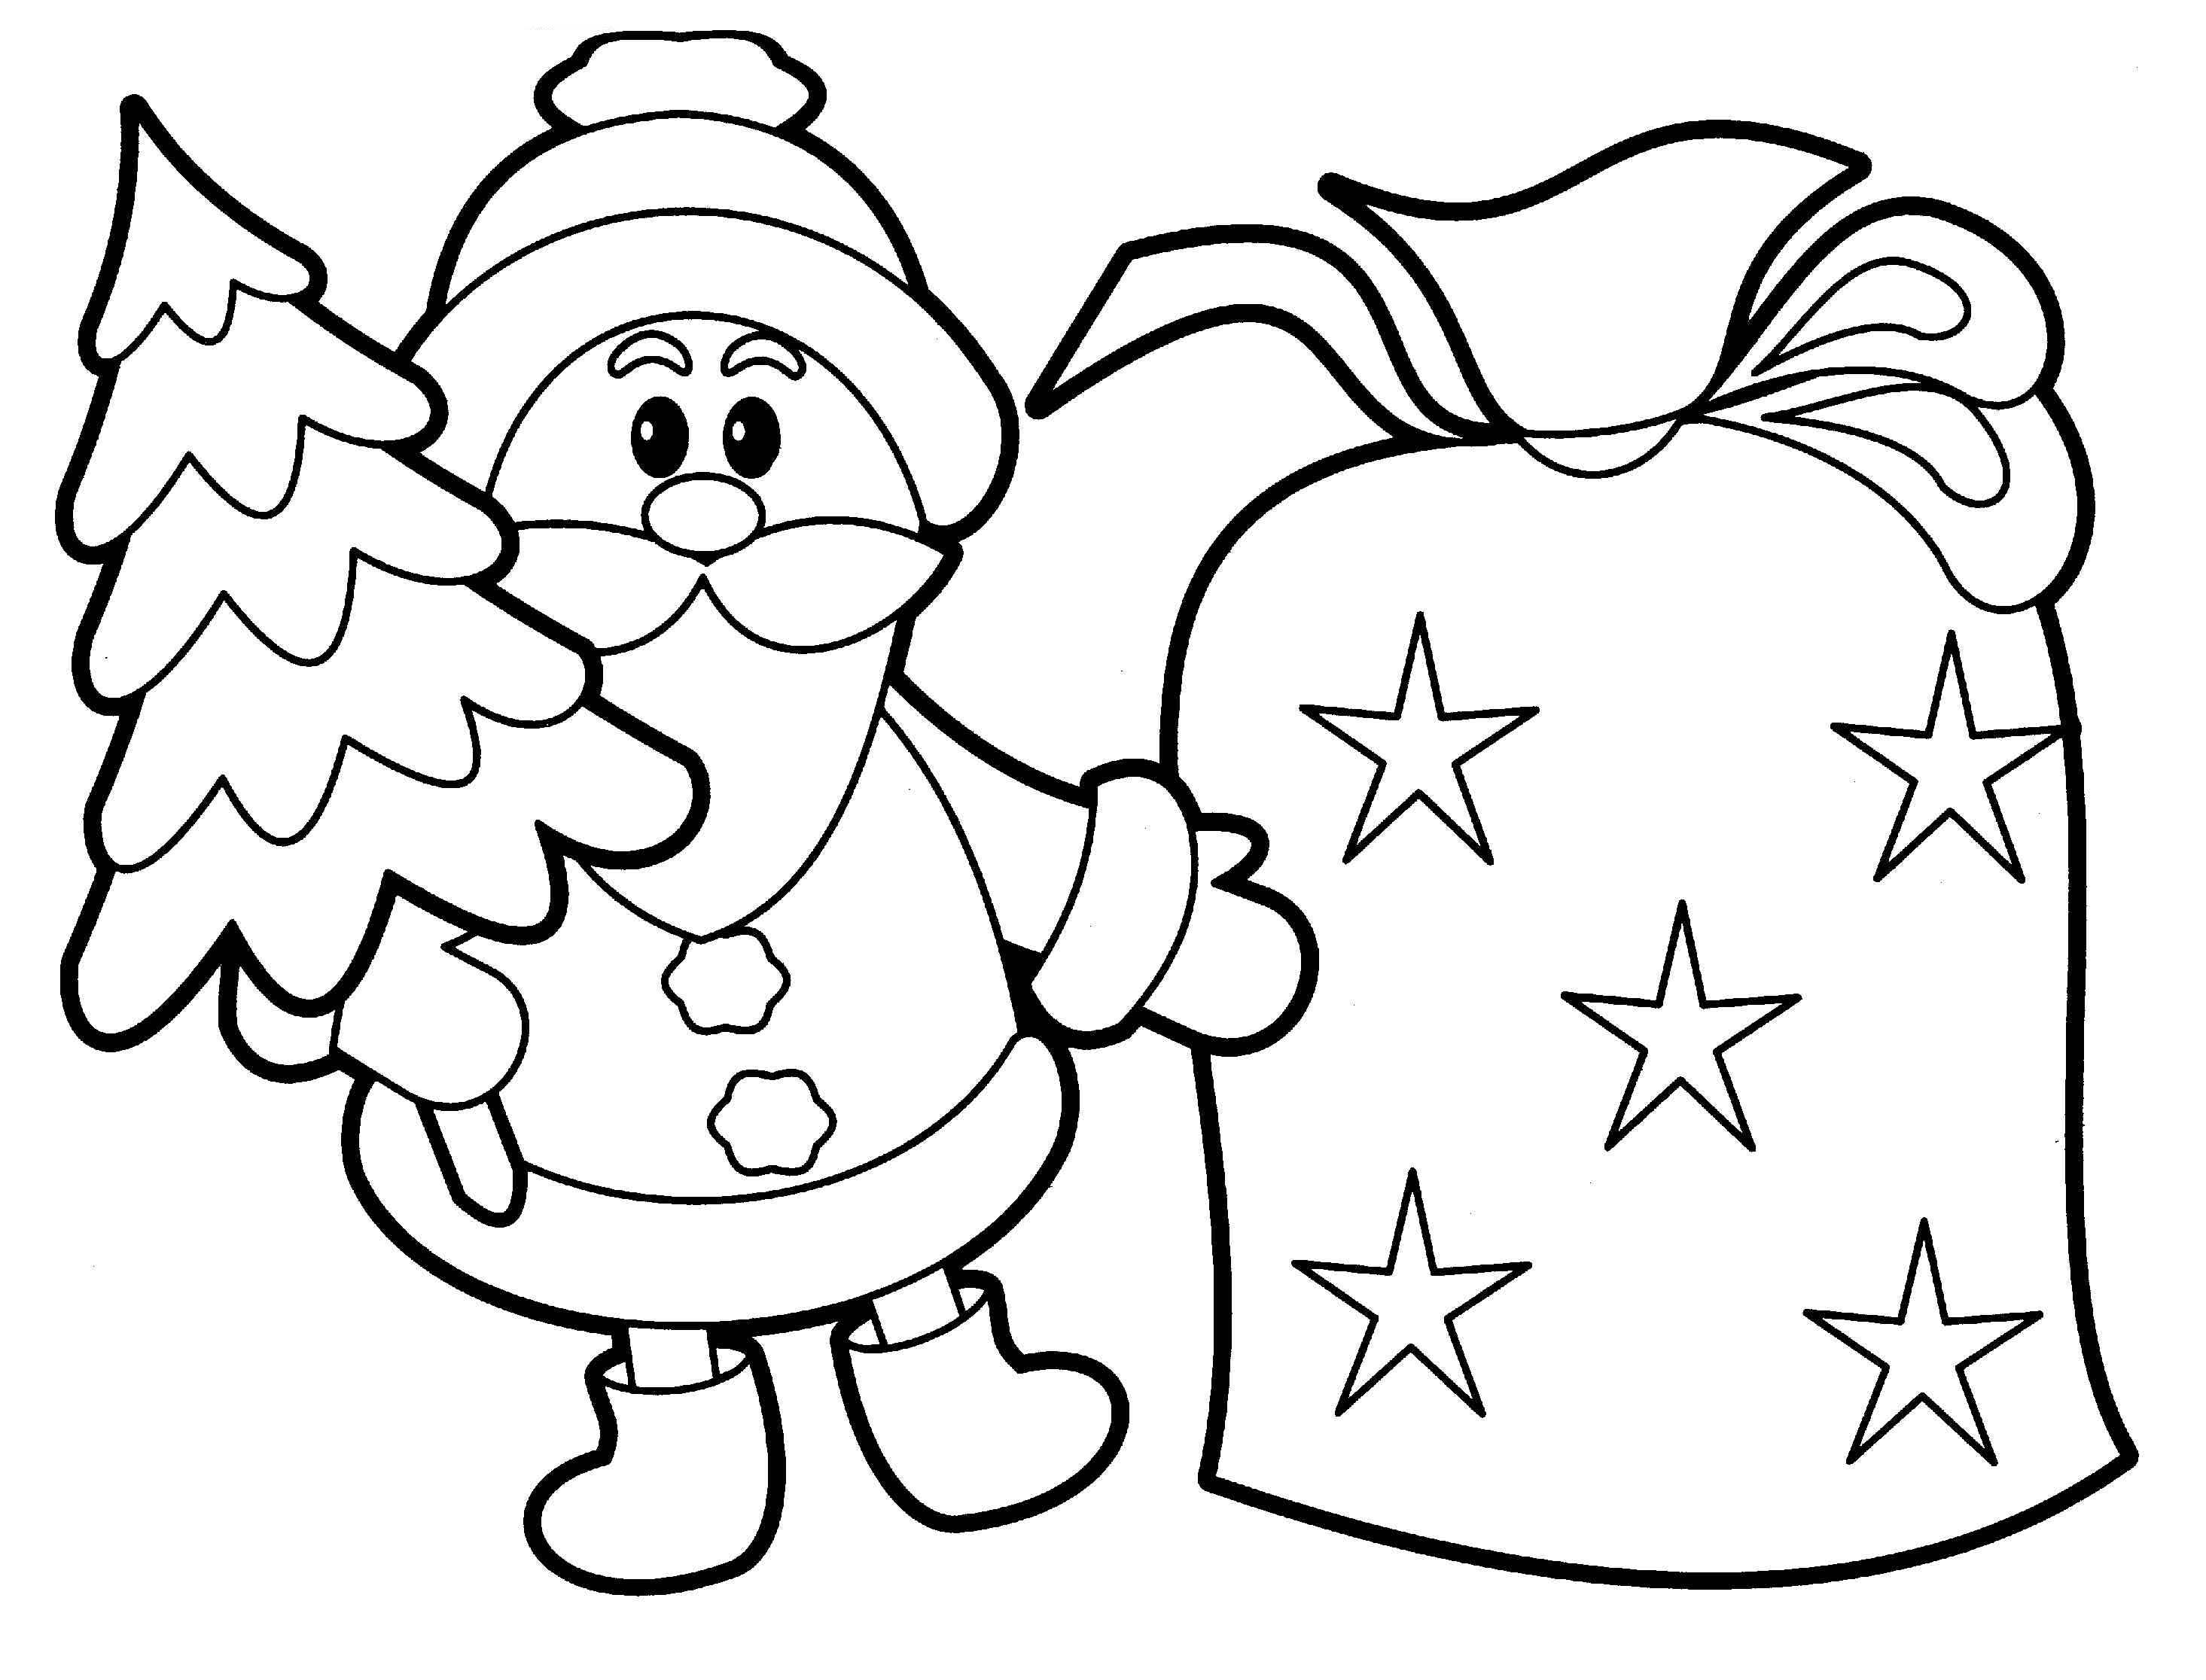 Christmas colouring sheet only coloring pages for Christmas printables coloring pages